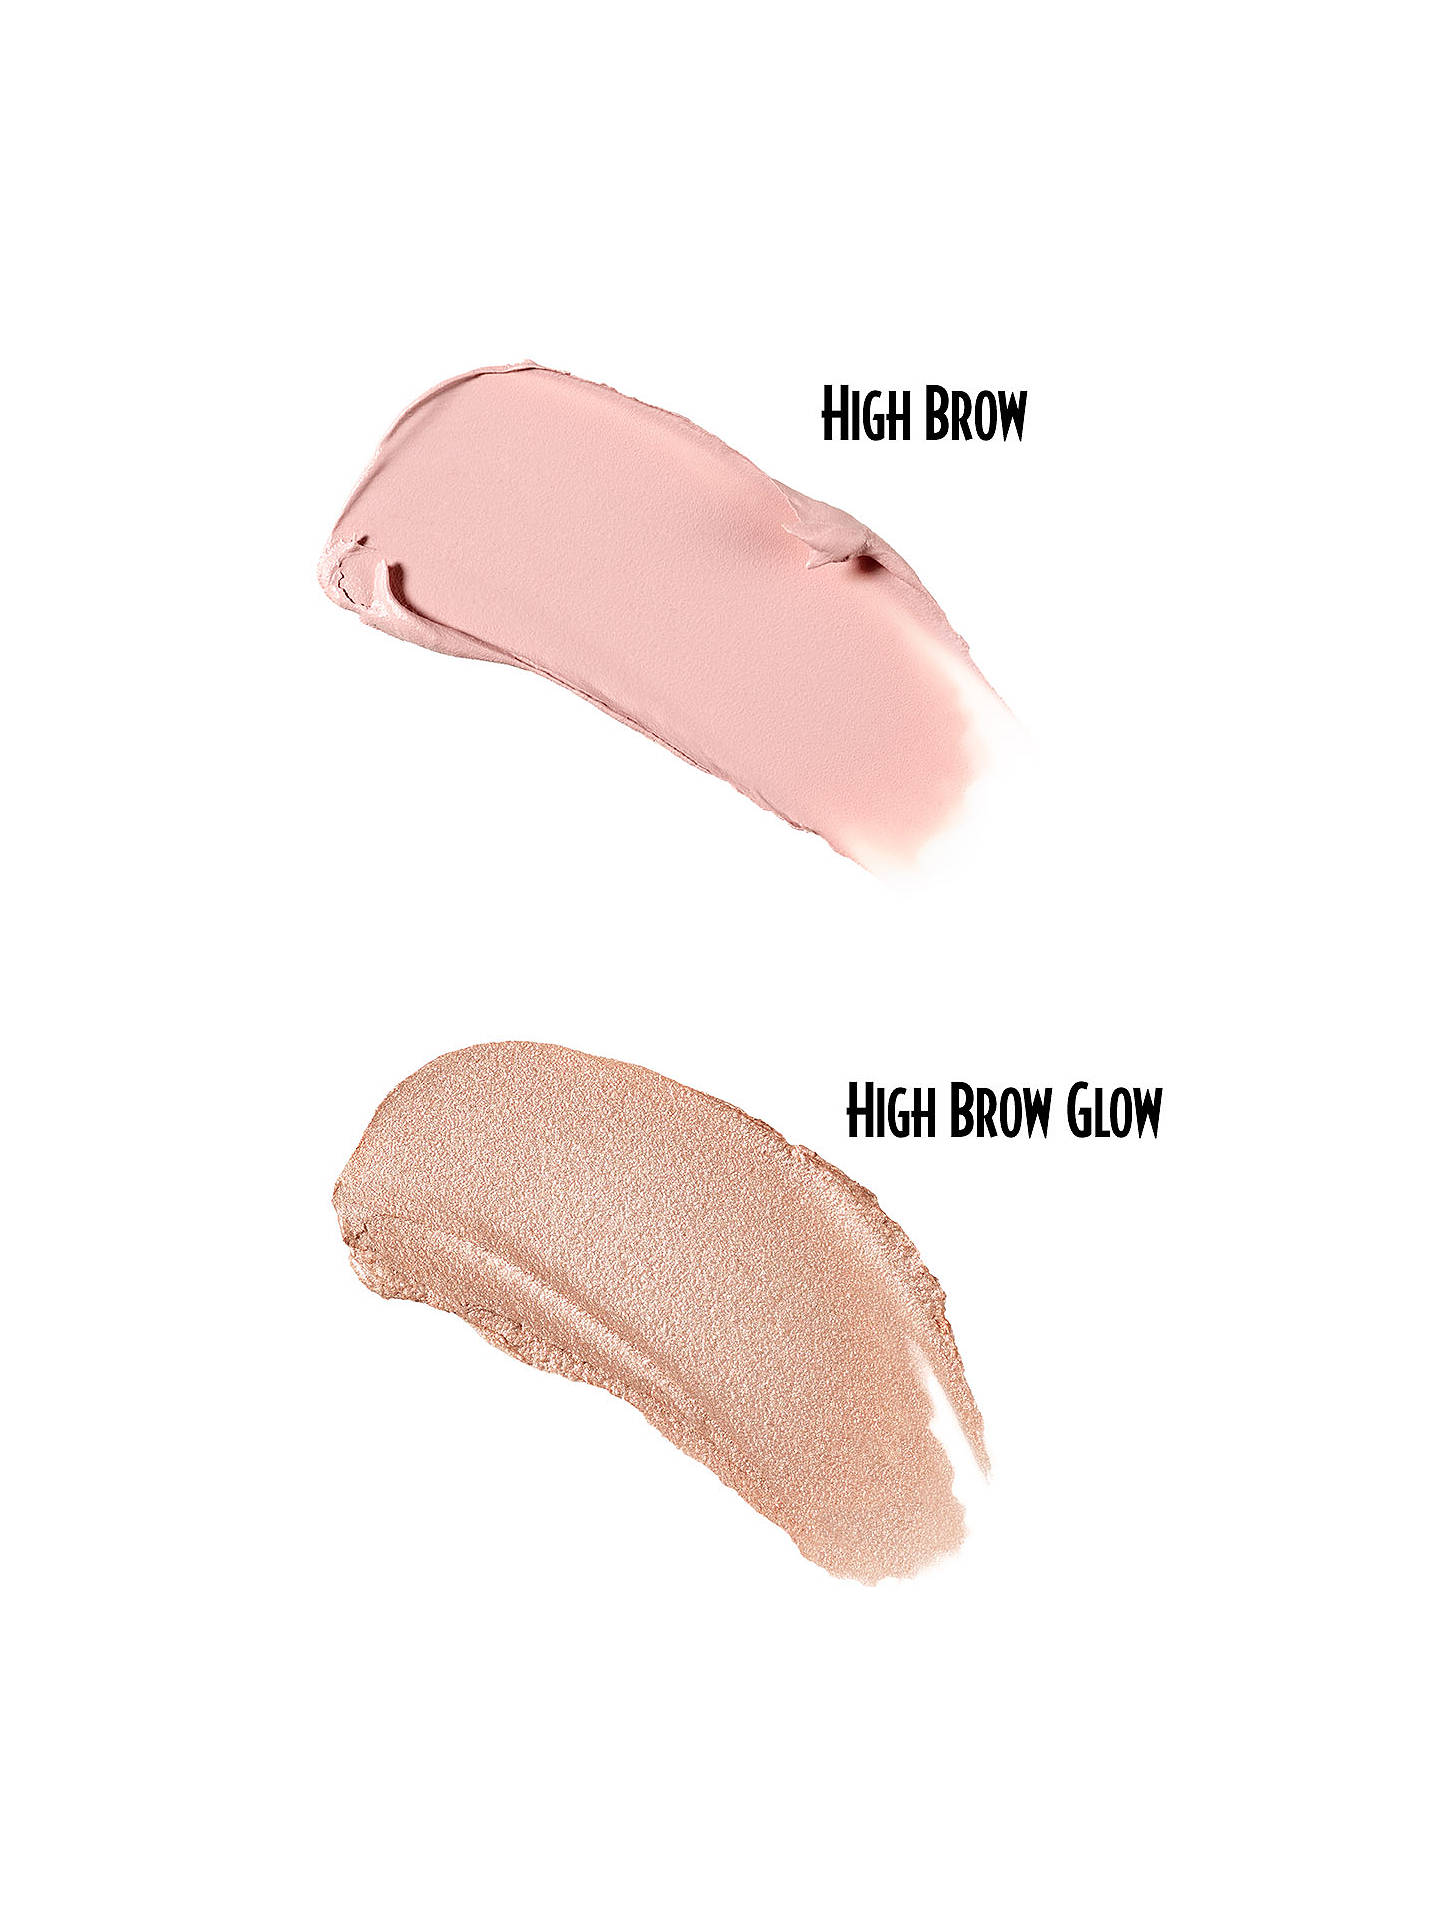 BuyBenefit High Brow Glow Brow Pencil Highlighter, Pink Online at johnlewis.com